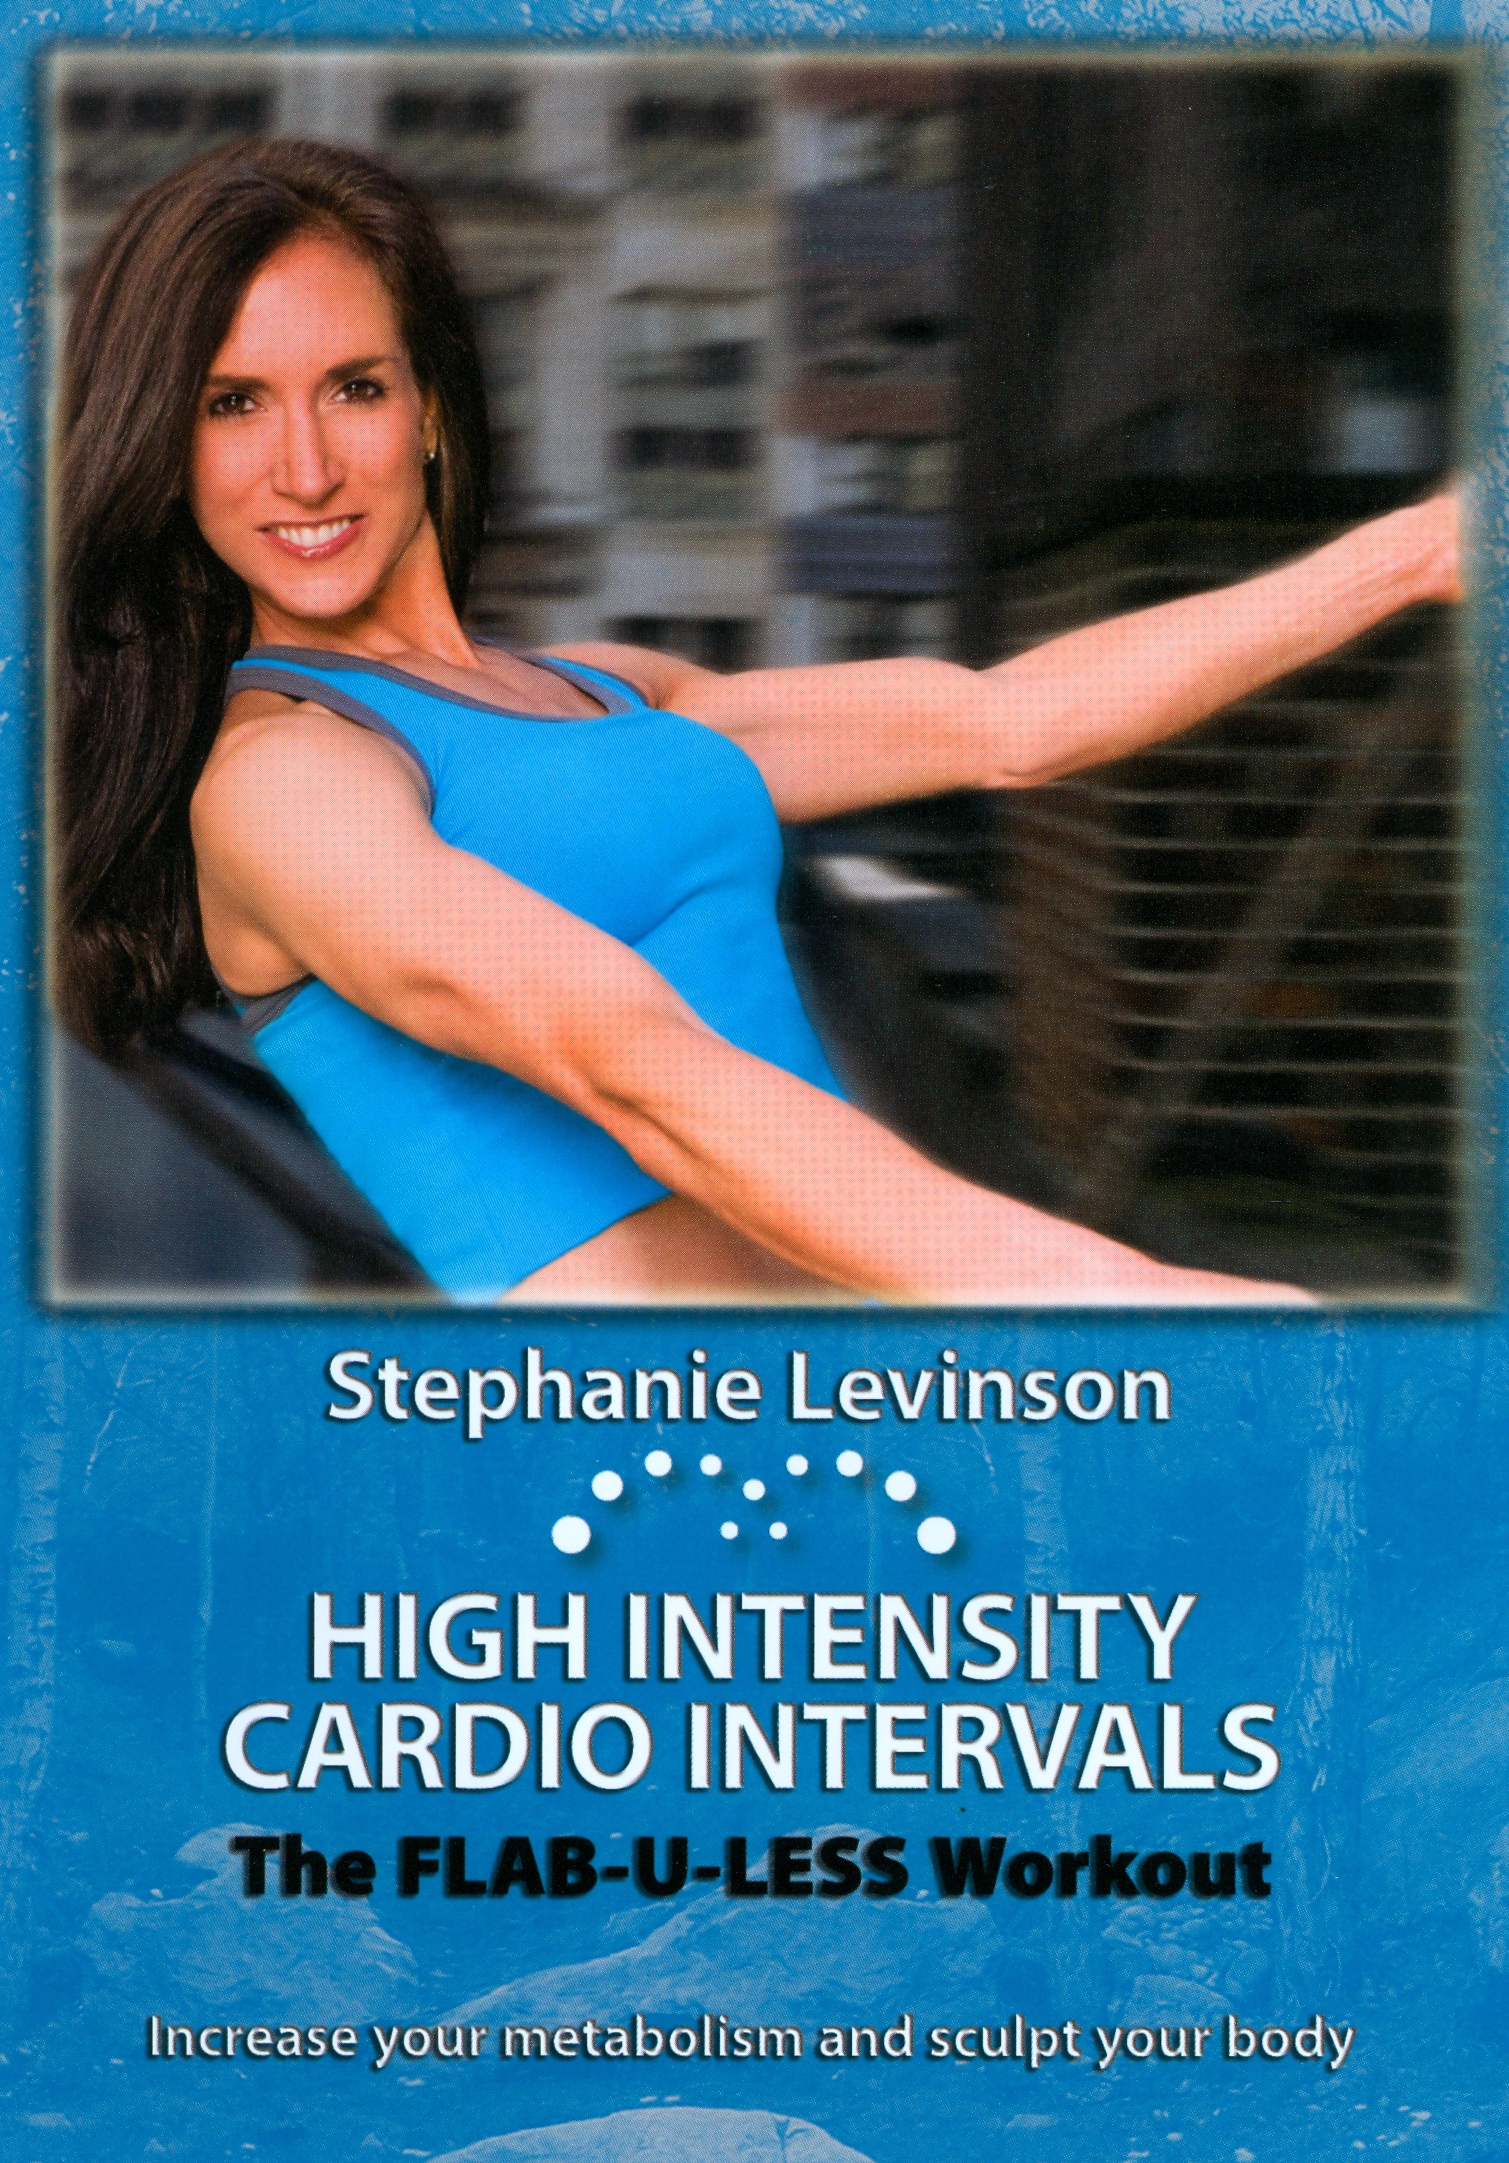 Stephanie Levinson: High Intensity Cardio Intervals - The Flab-U-Less Workout